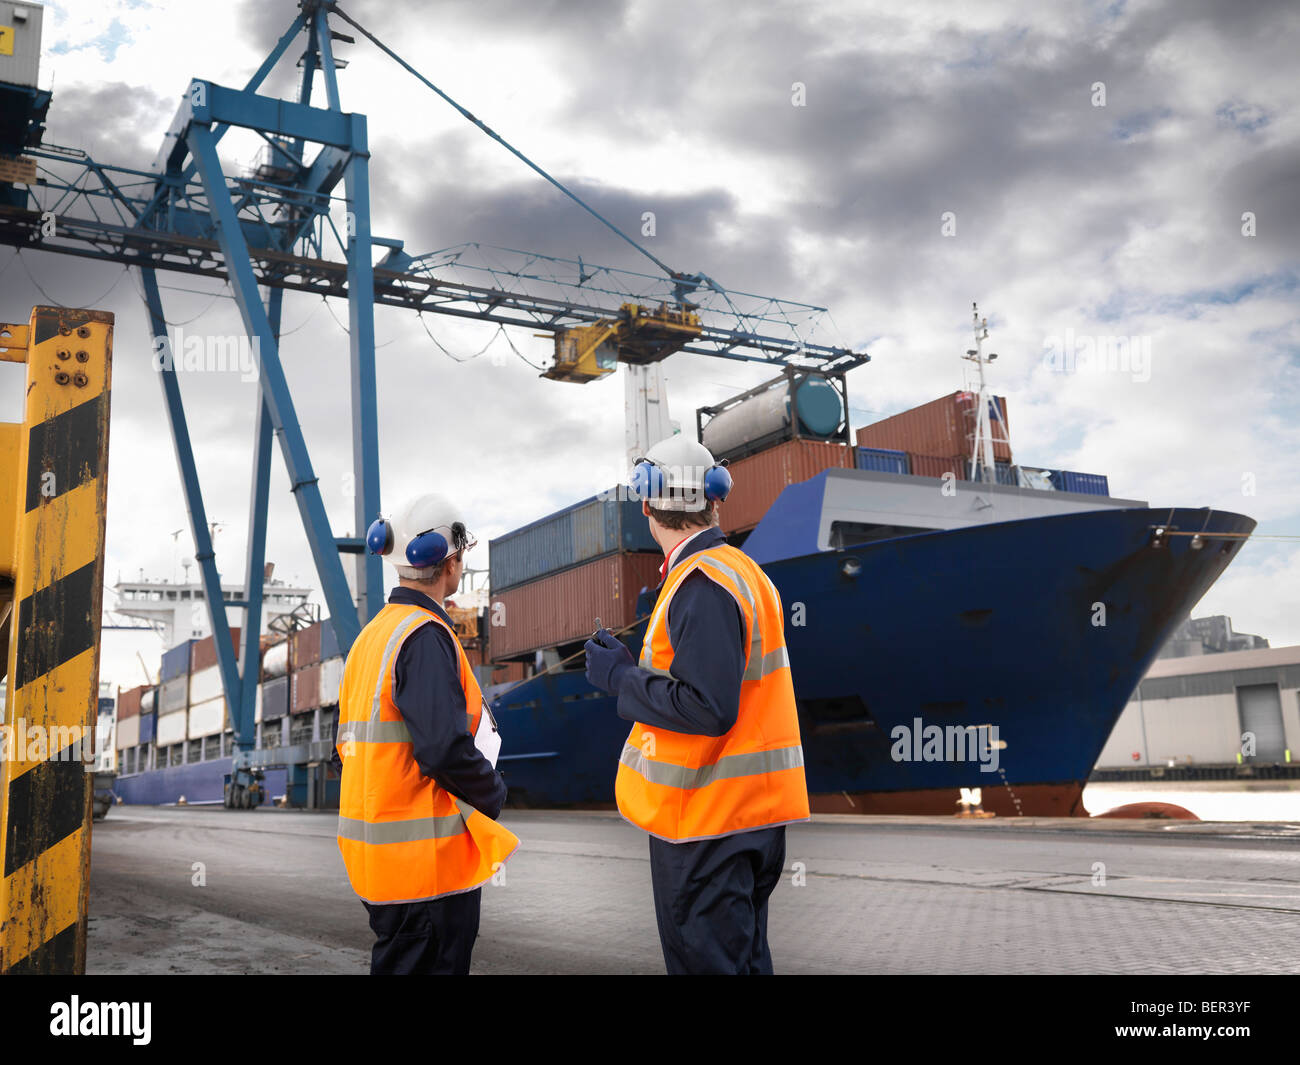 Port Workers With Ship Being Loaded - Stock Image